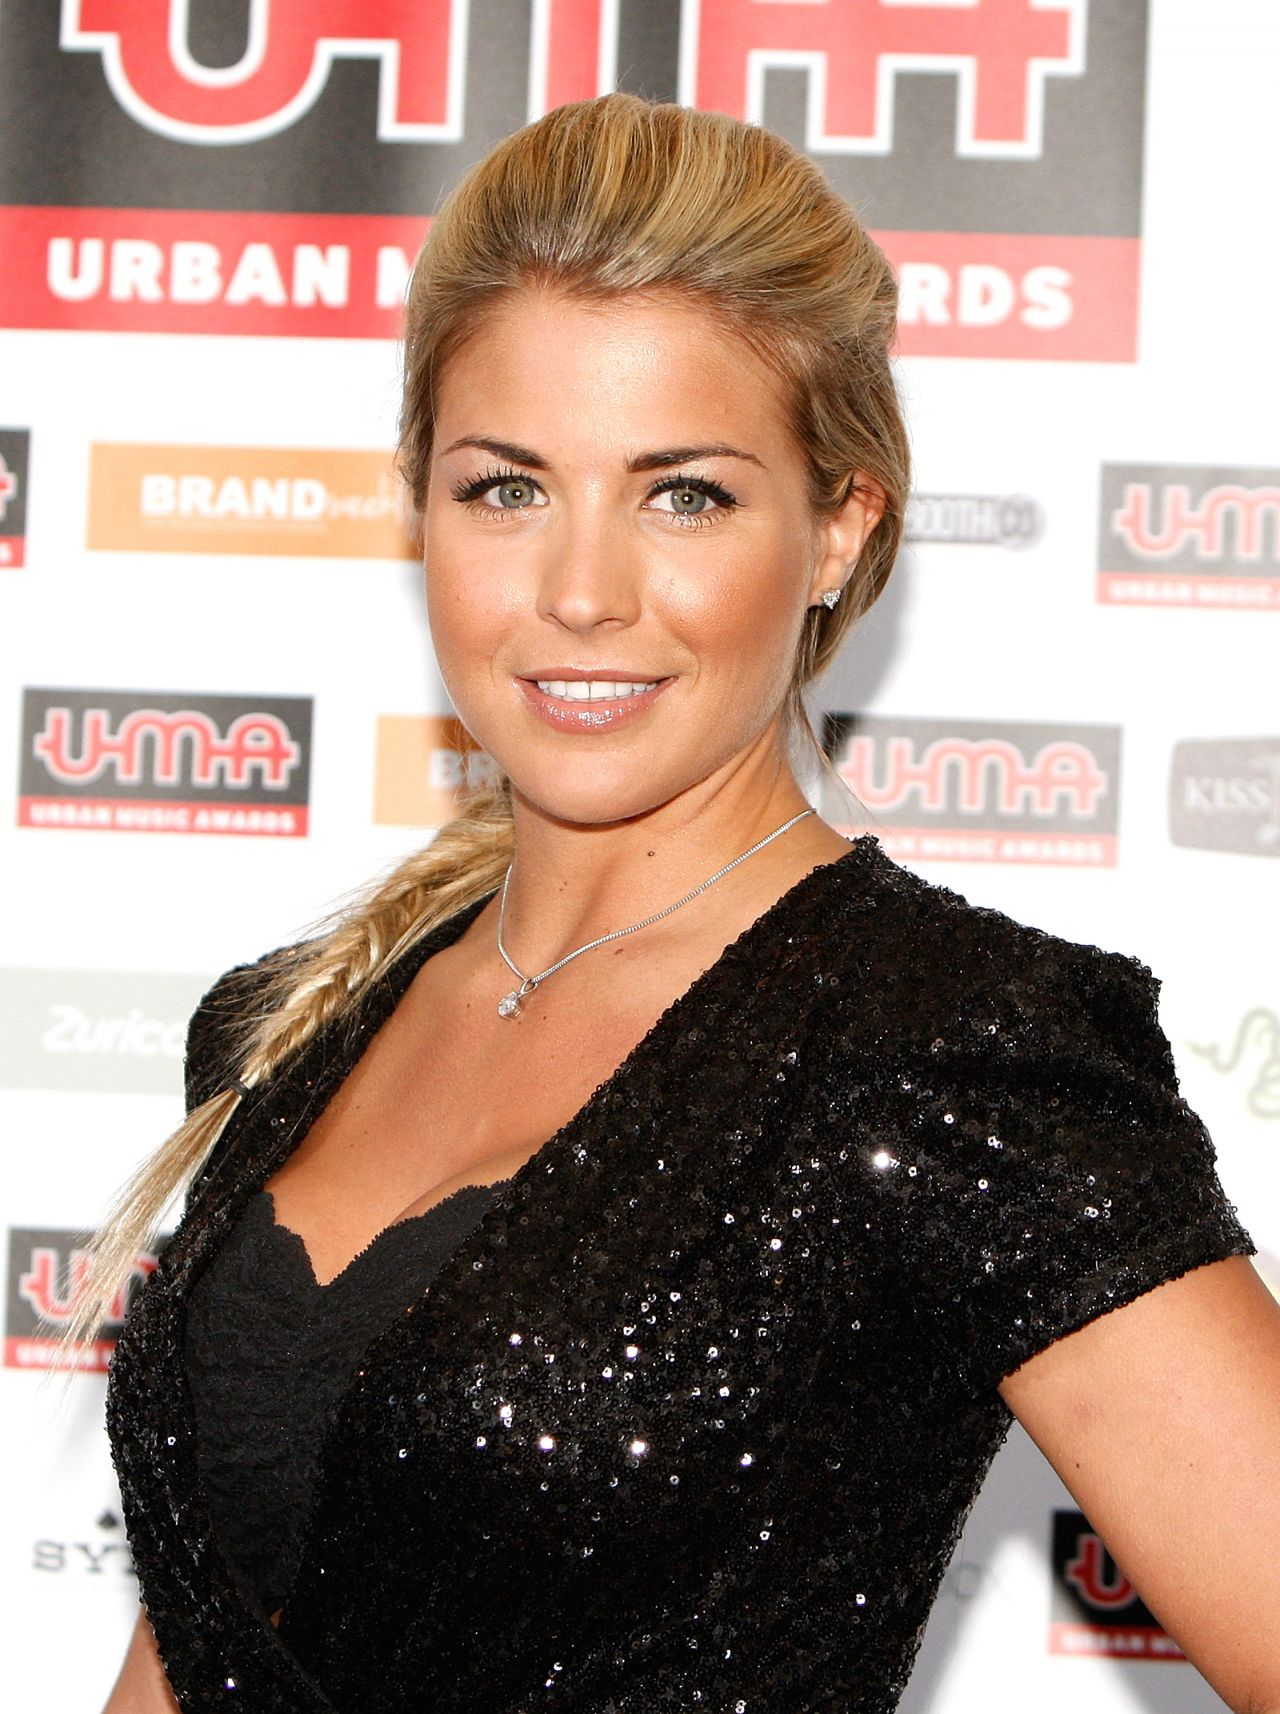 Gemma Atkinson at 11th Annual Urban Music Awards in London - November 2013